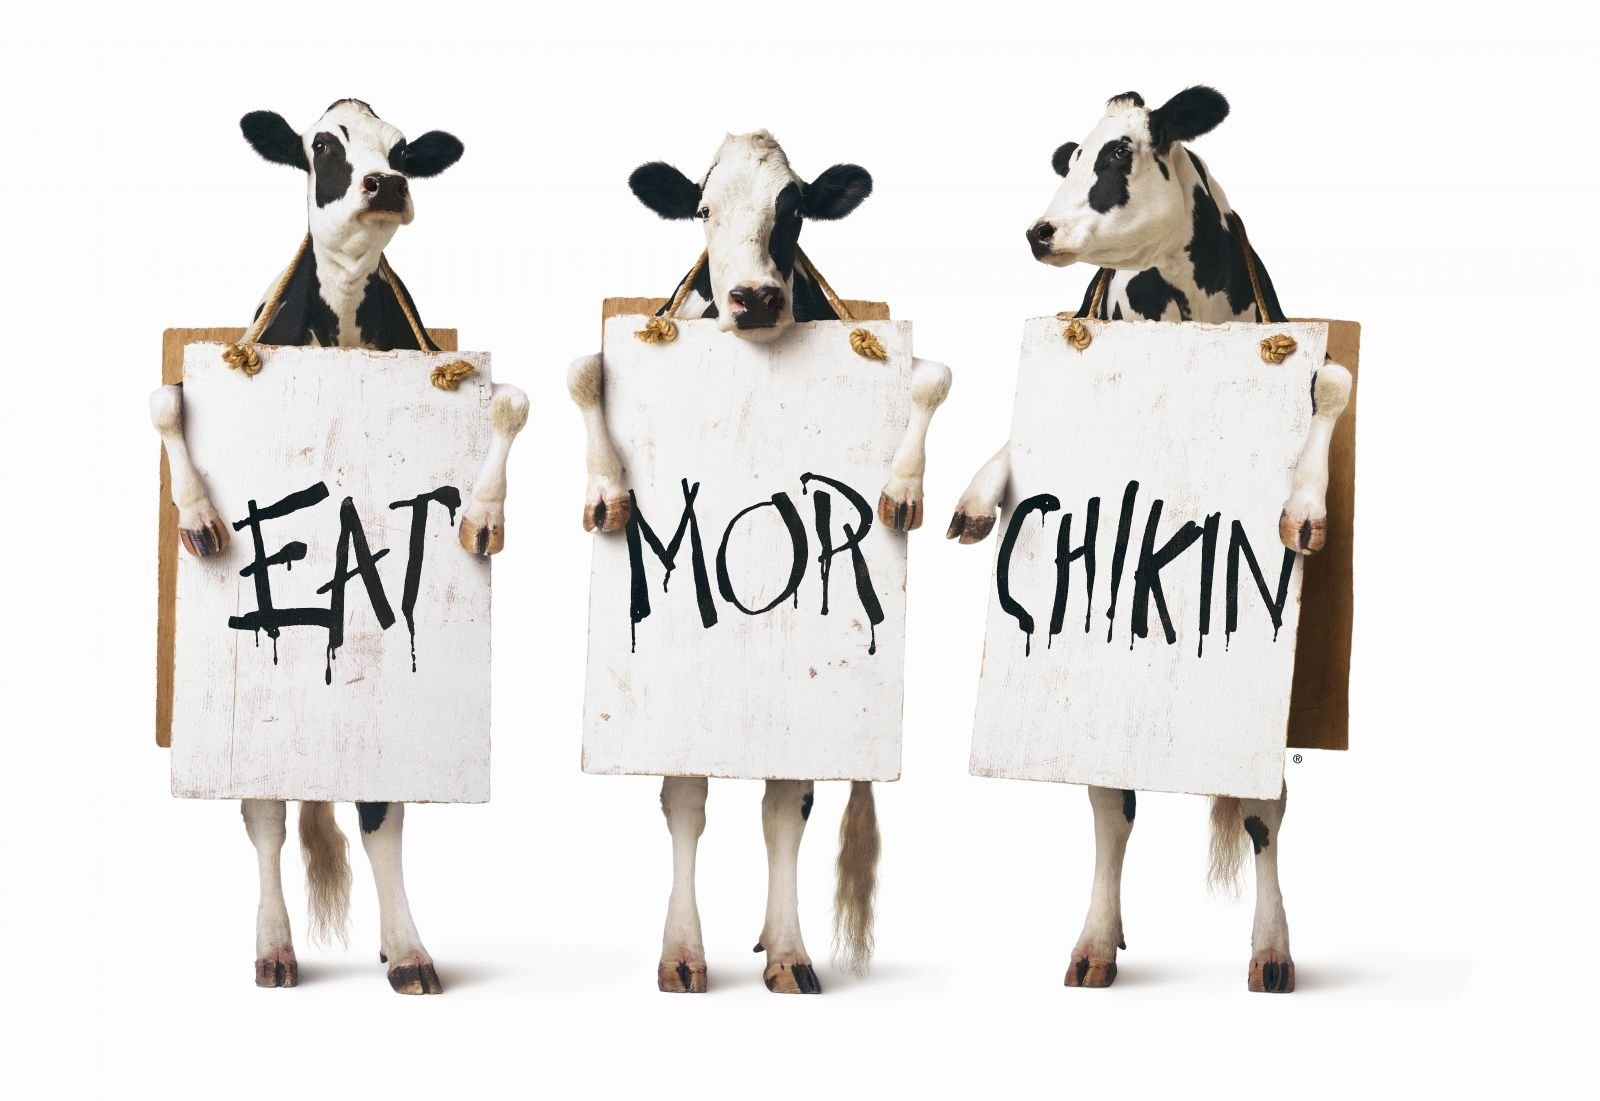 Example: Cows from Chick-Fil-A